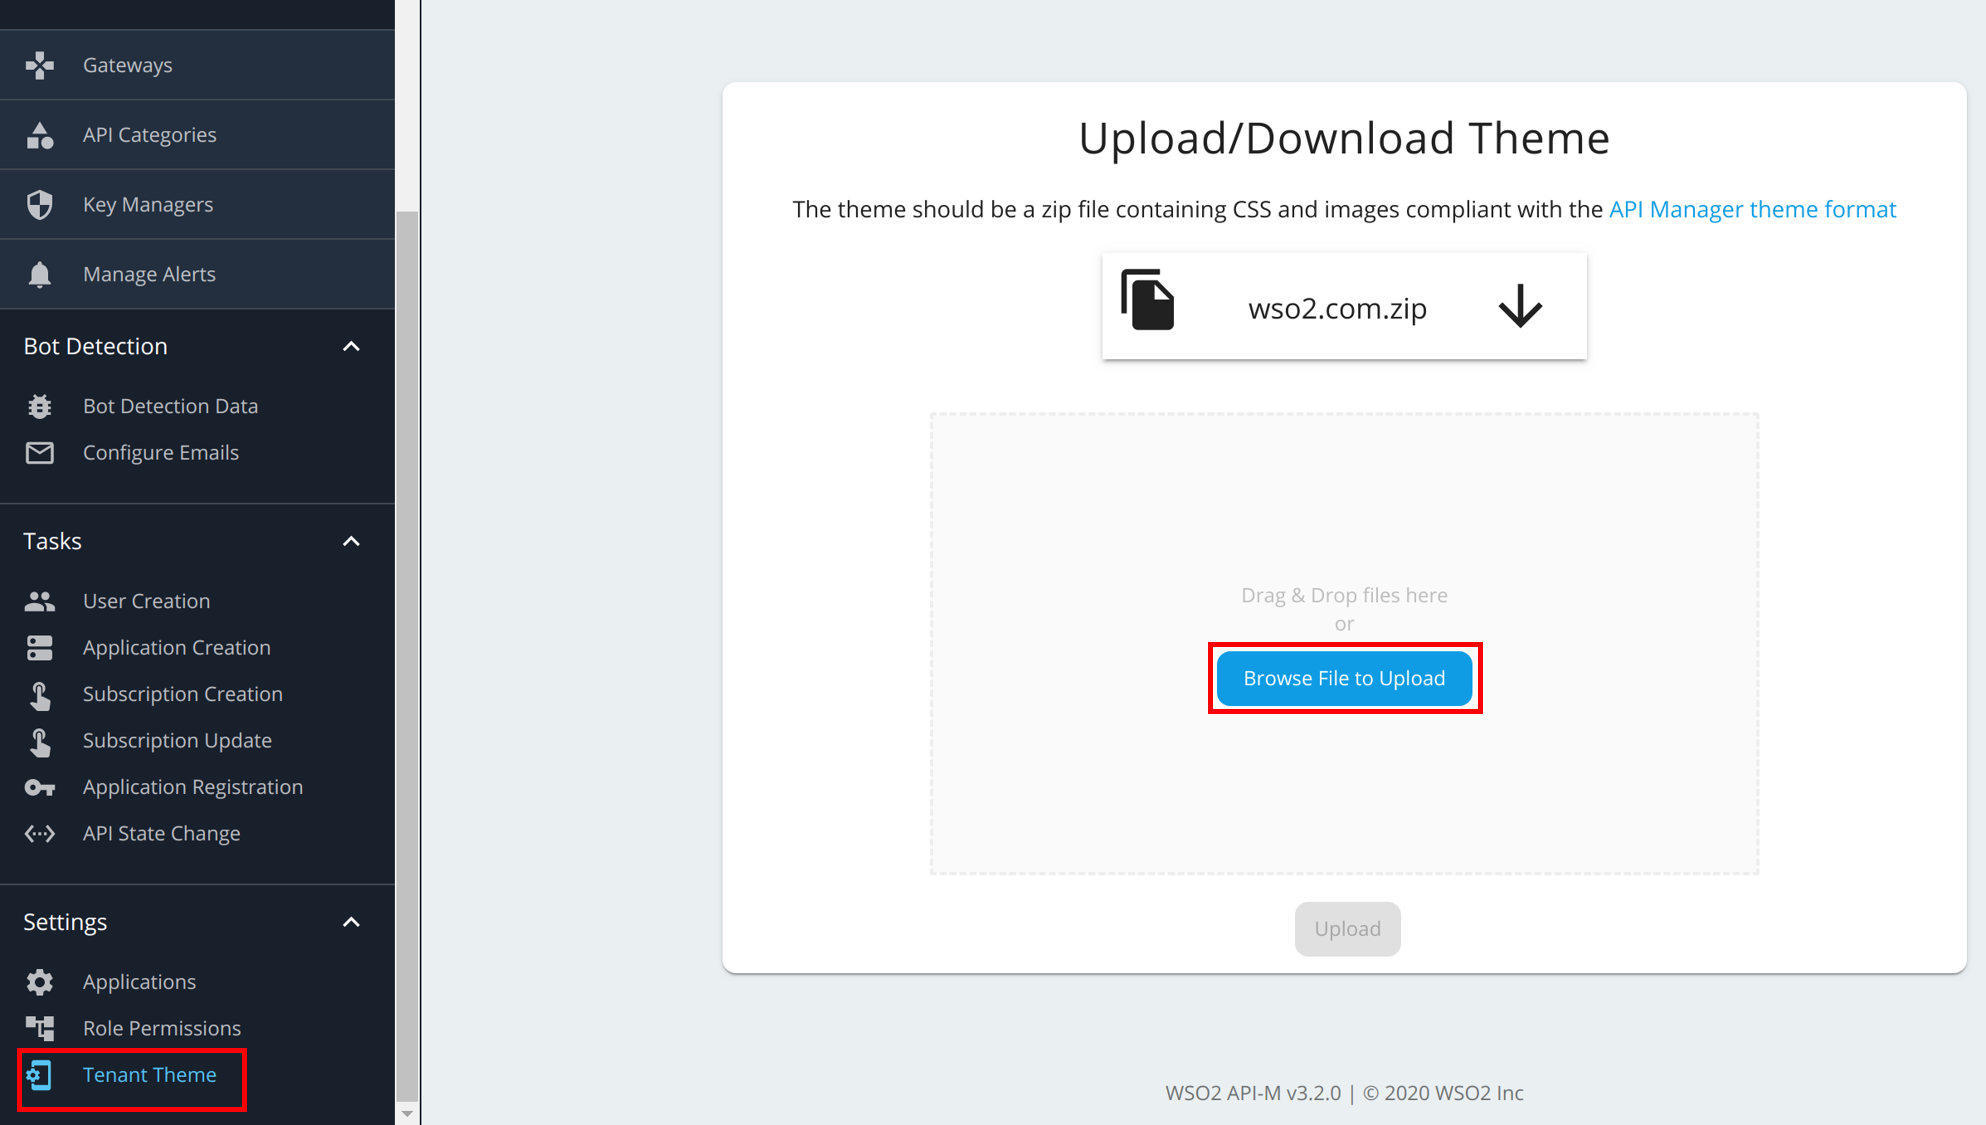 Upload tenant theme